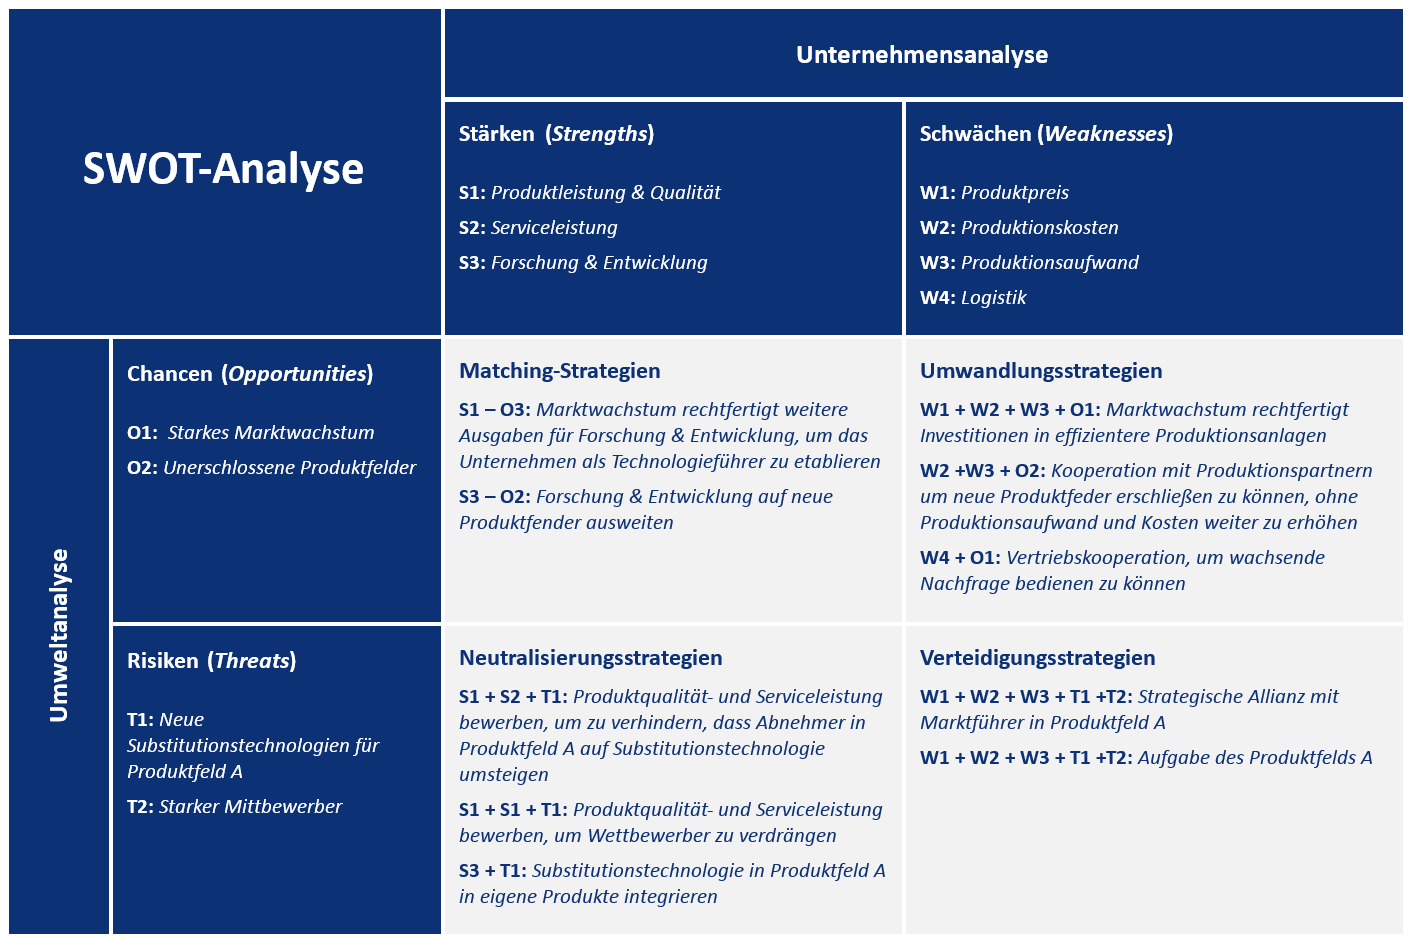 lush swot analysis Use swotanalysiscom to strategize, plan, and manage your projects browse an extensive library of proven frameworks, online templates, and examples - swot analysis, okr goals, v2mom.